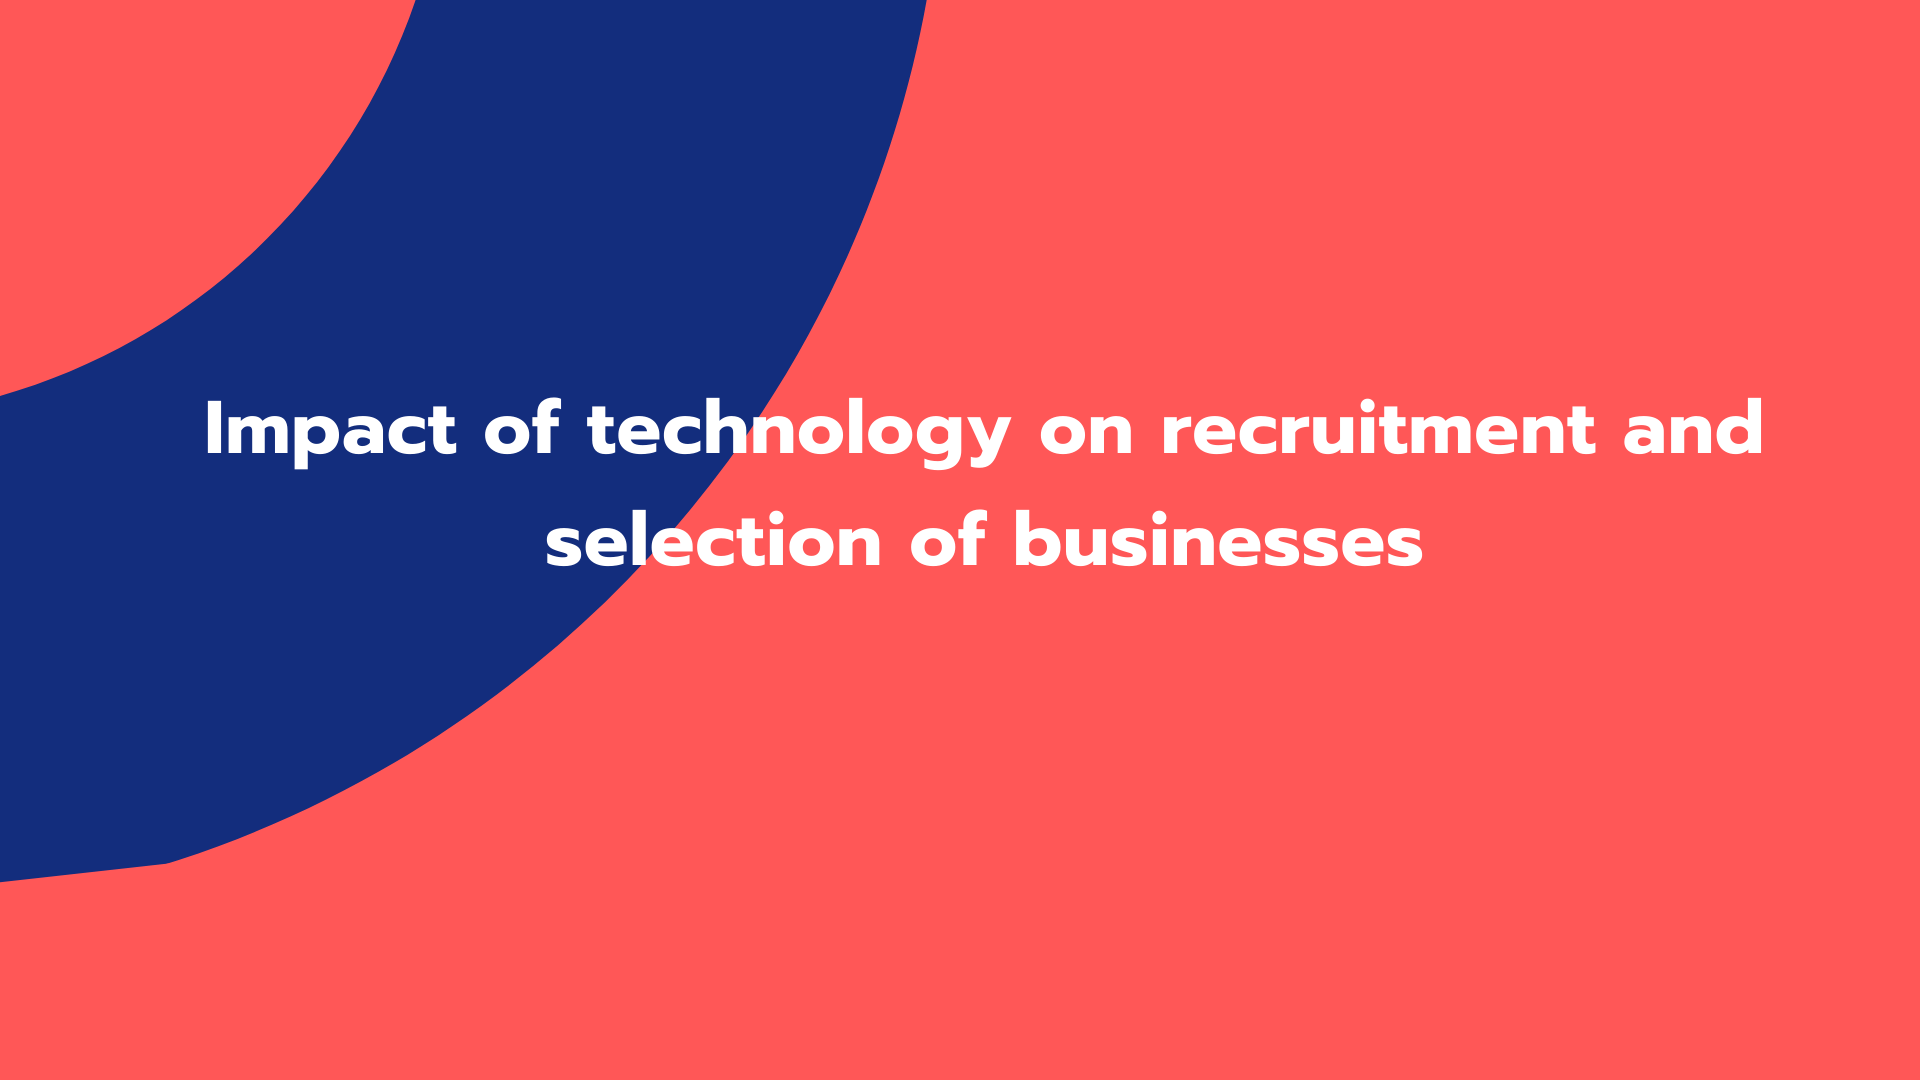 Impact of technology on recruitment and selection of businesses